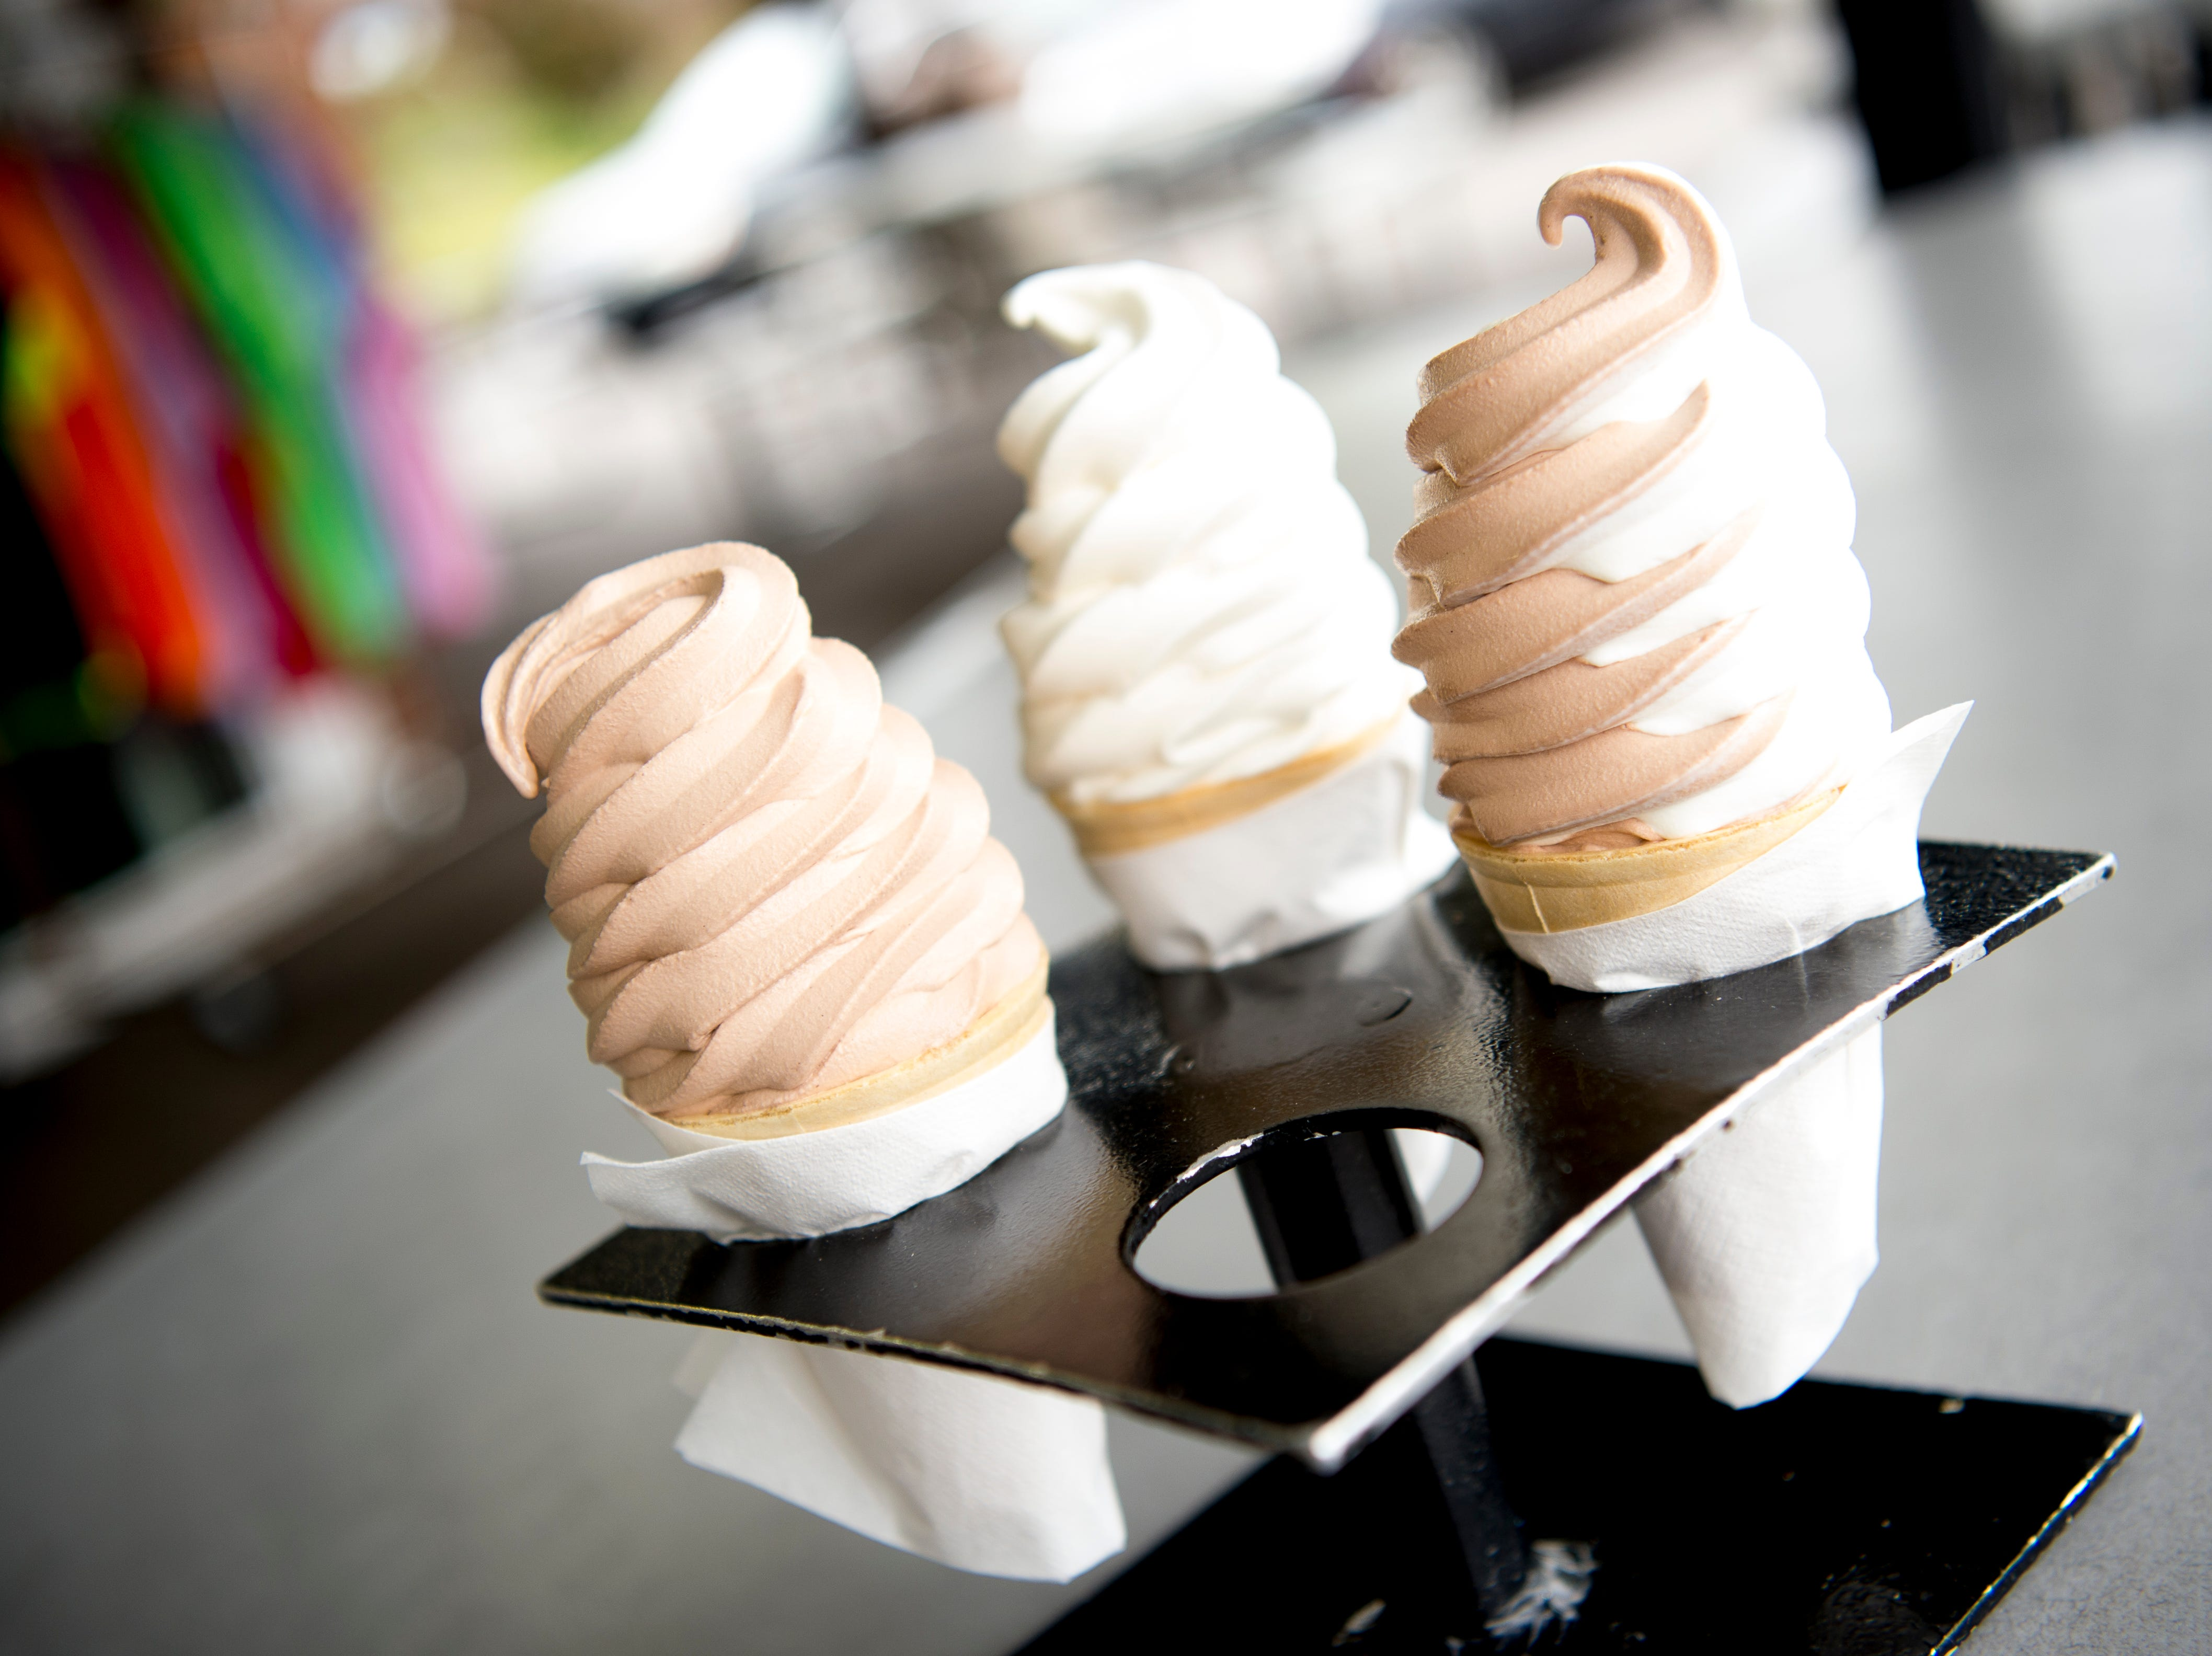 The chocolate, vanilla and chocolate-vanilla swirl cones offered at Cardin's Drive-In on Asheville Highway in Knoxville, Tennessee on Friday, April 5, 2019. The popular drive-in is celebrating 60 years of business this Saturday with sixty cent ice cream cones.